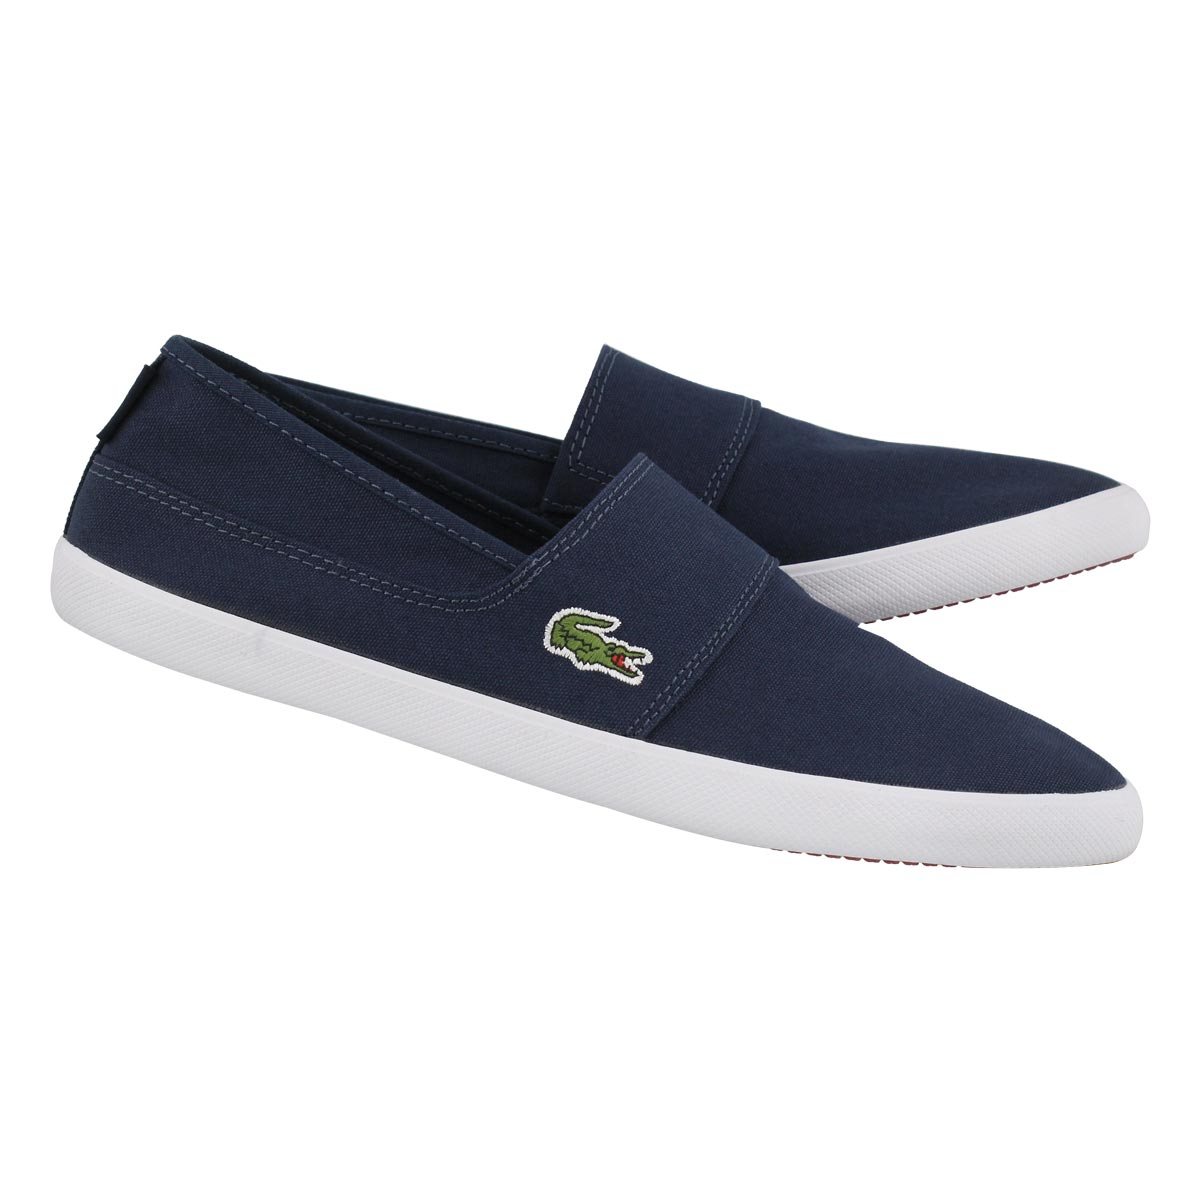 Mns Marice BL 2 dark blue casual slip on